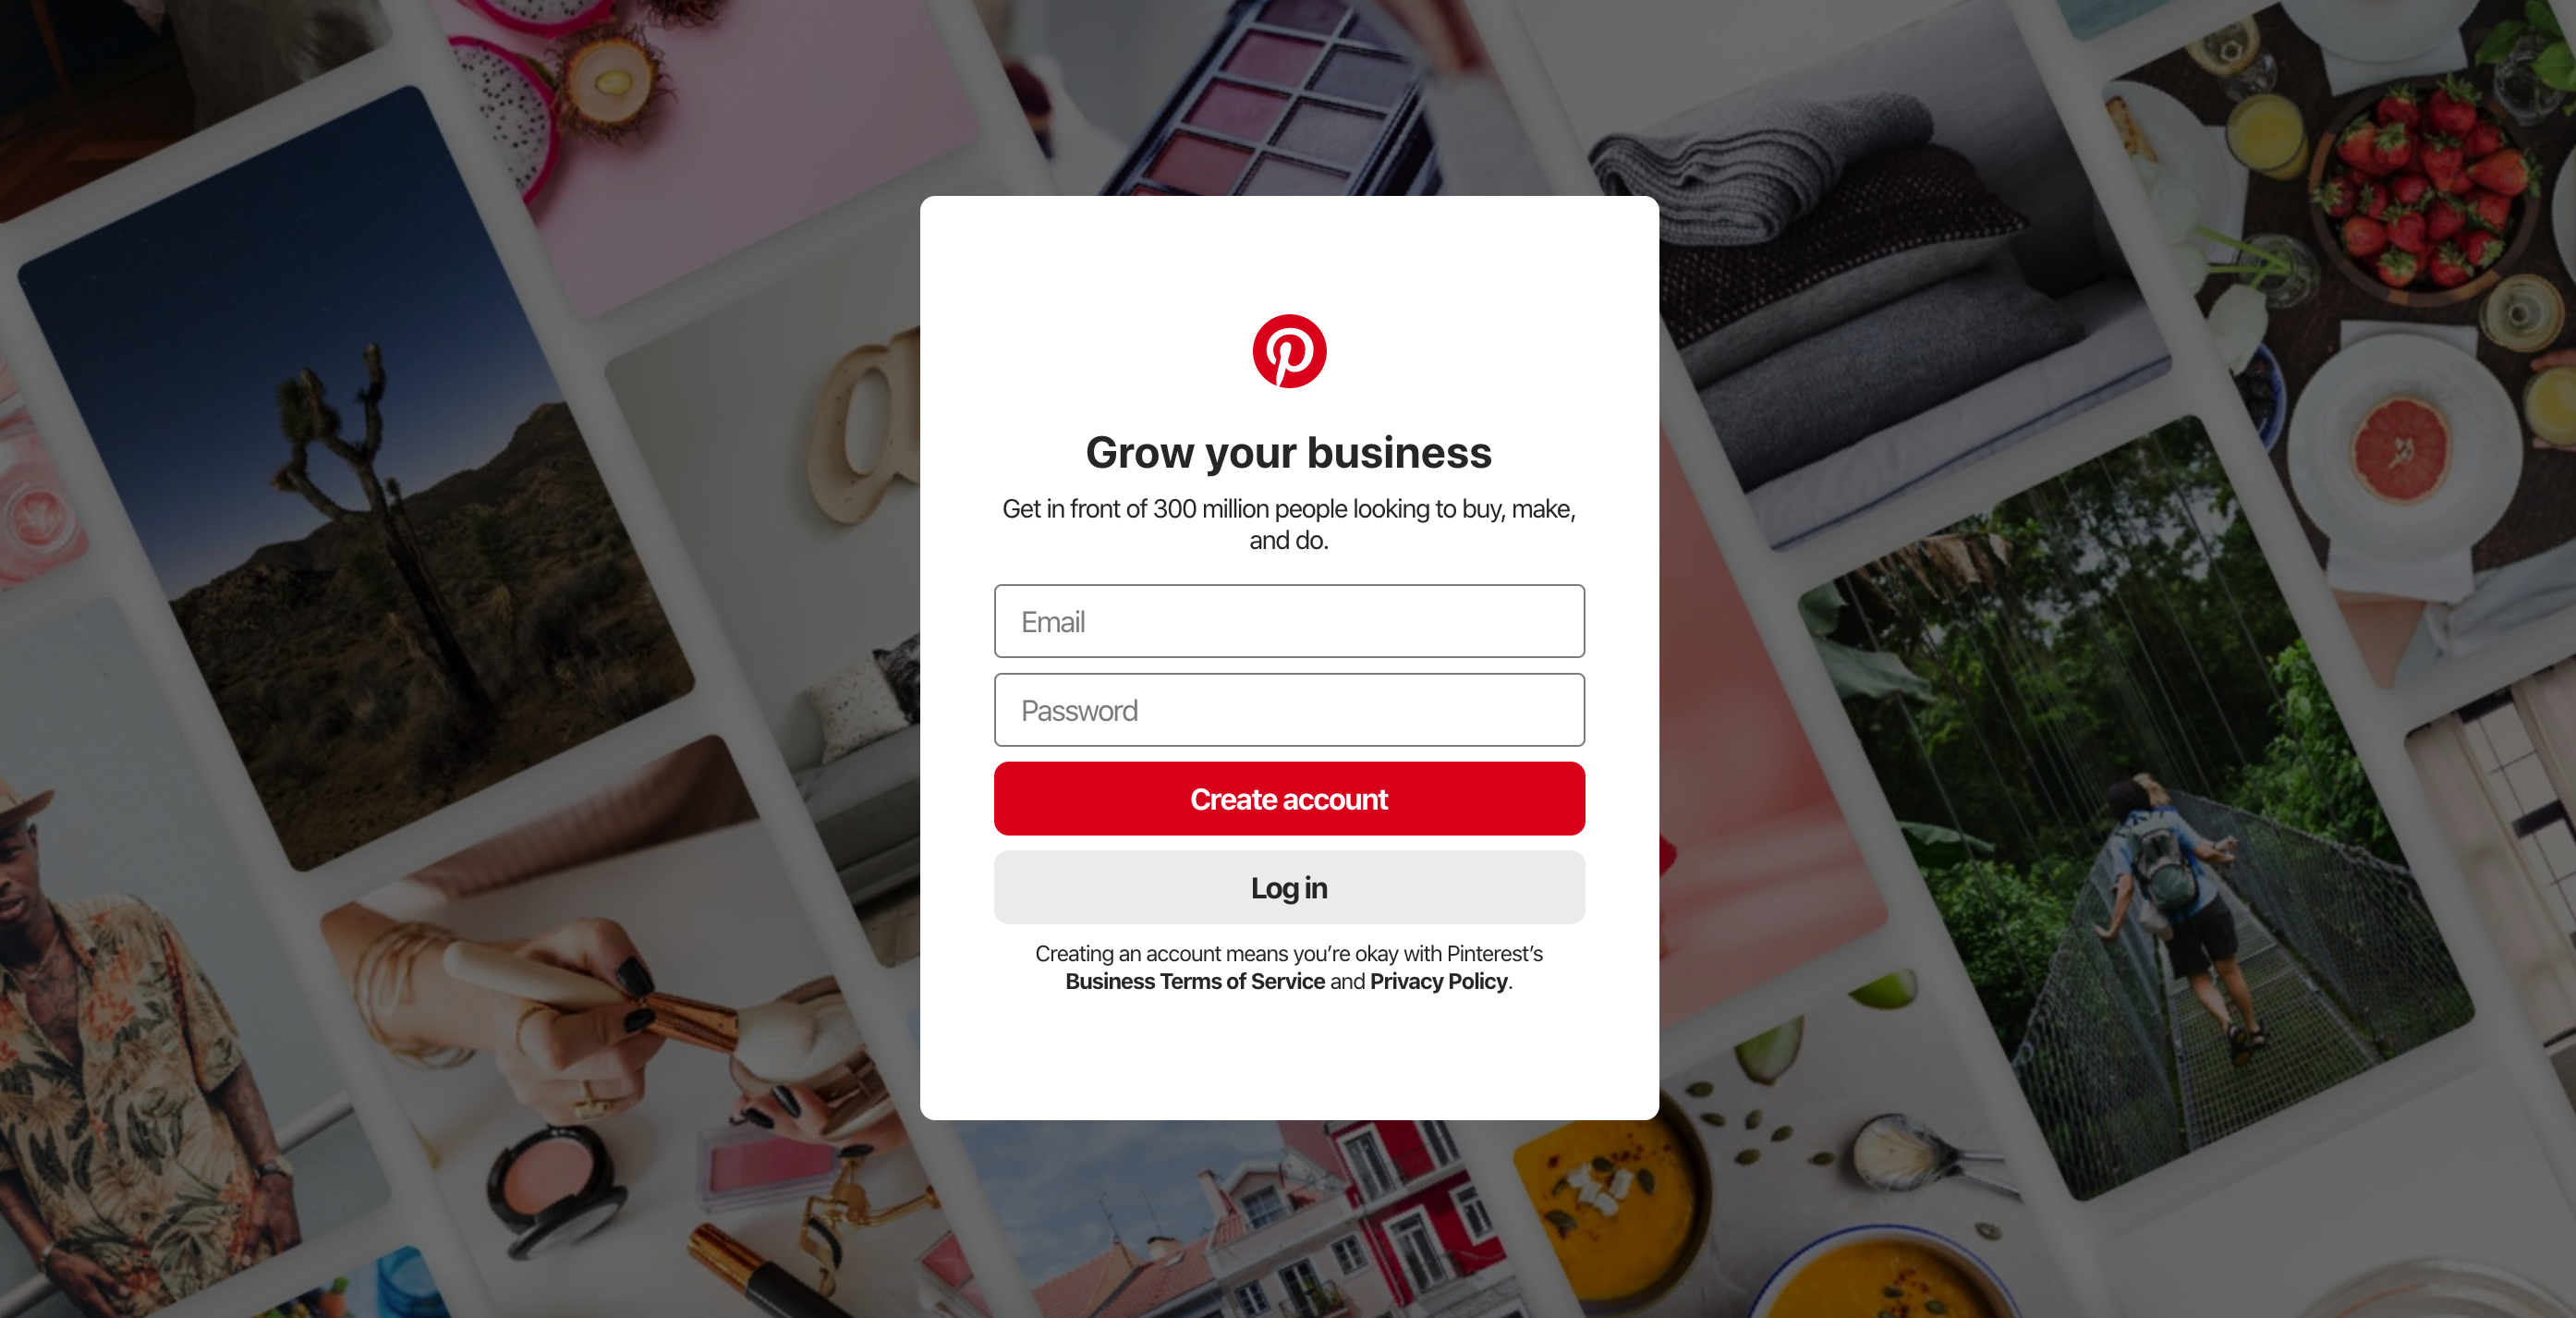 Sign Up for Free Pinterest Business Account